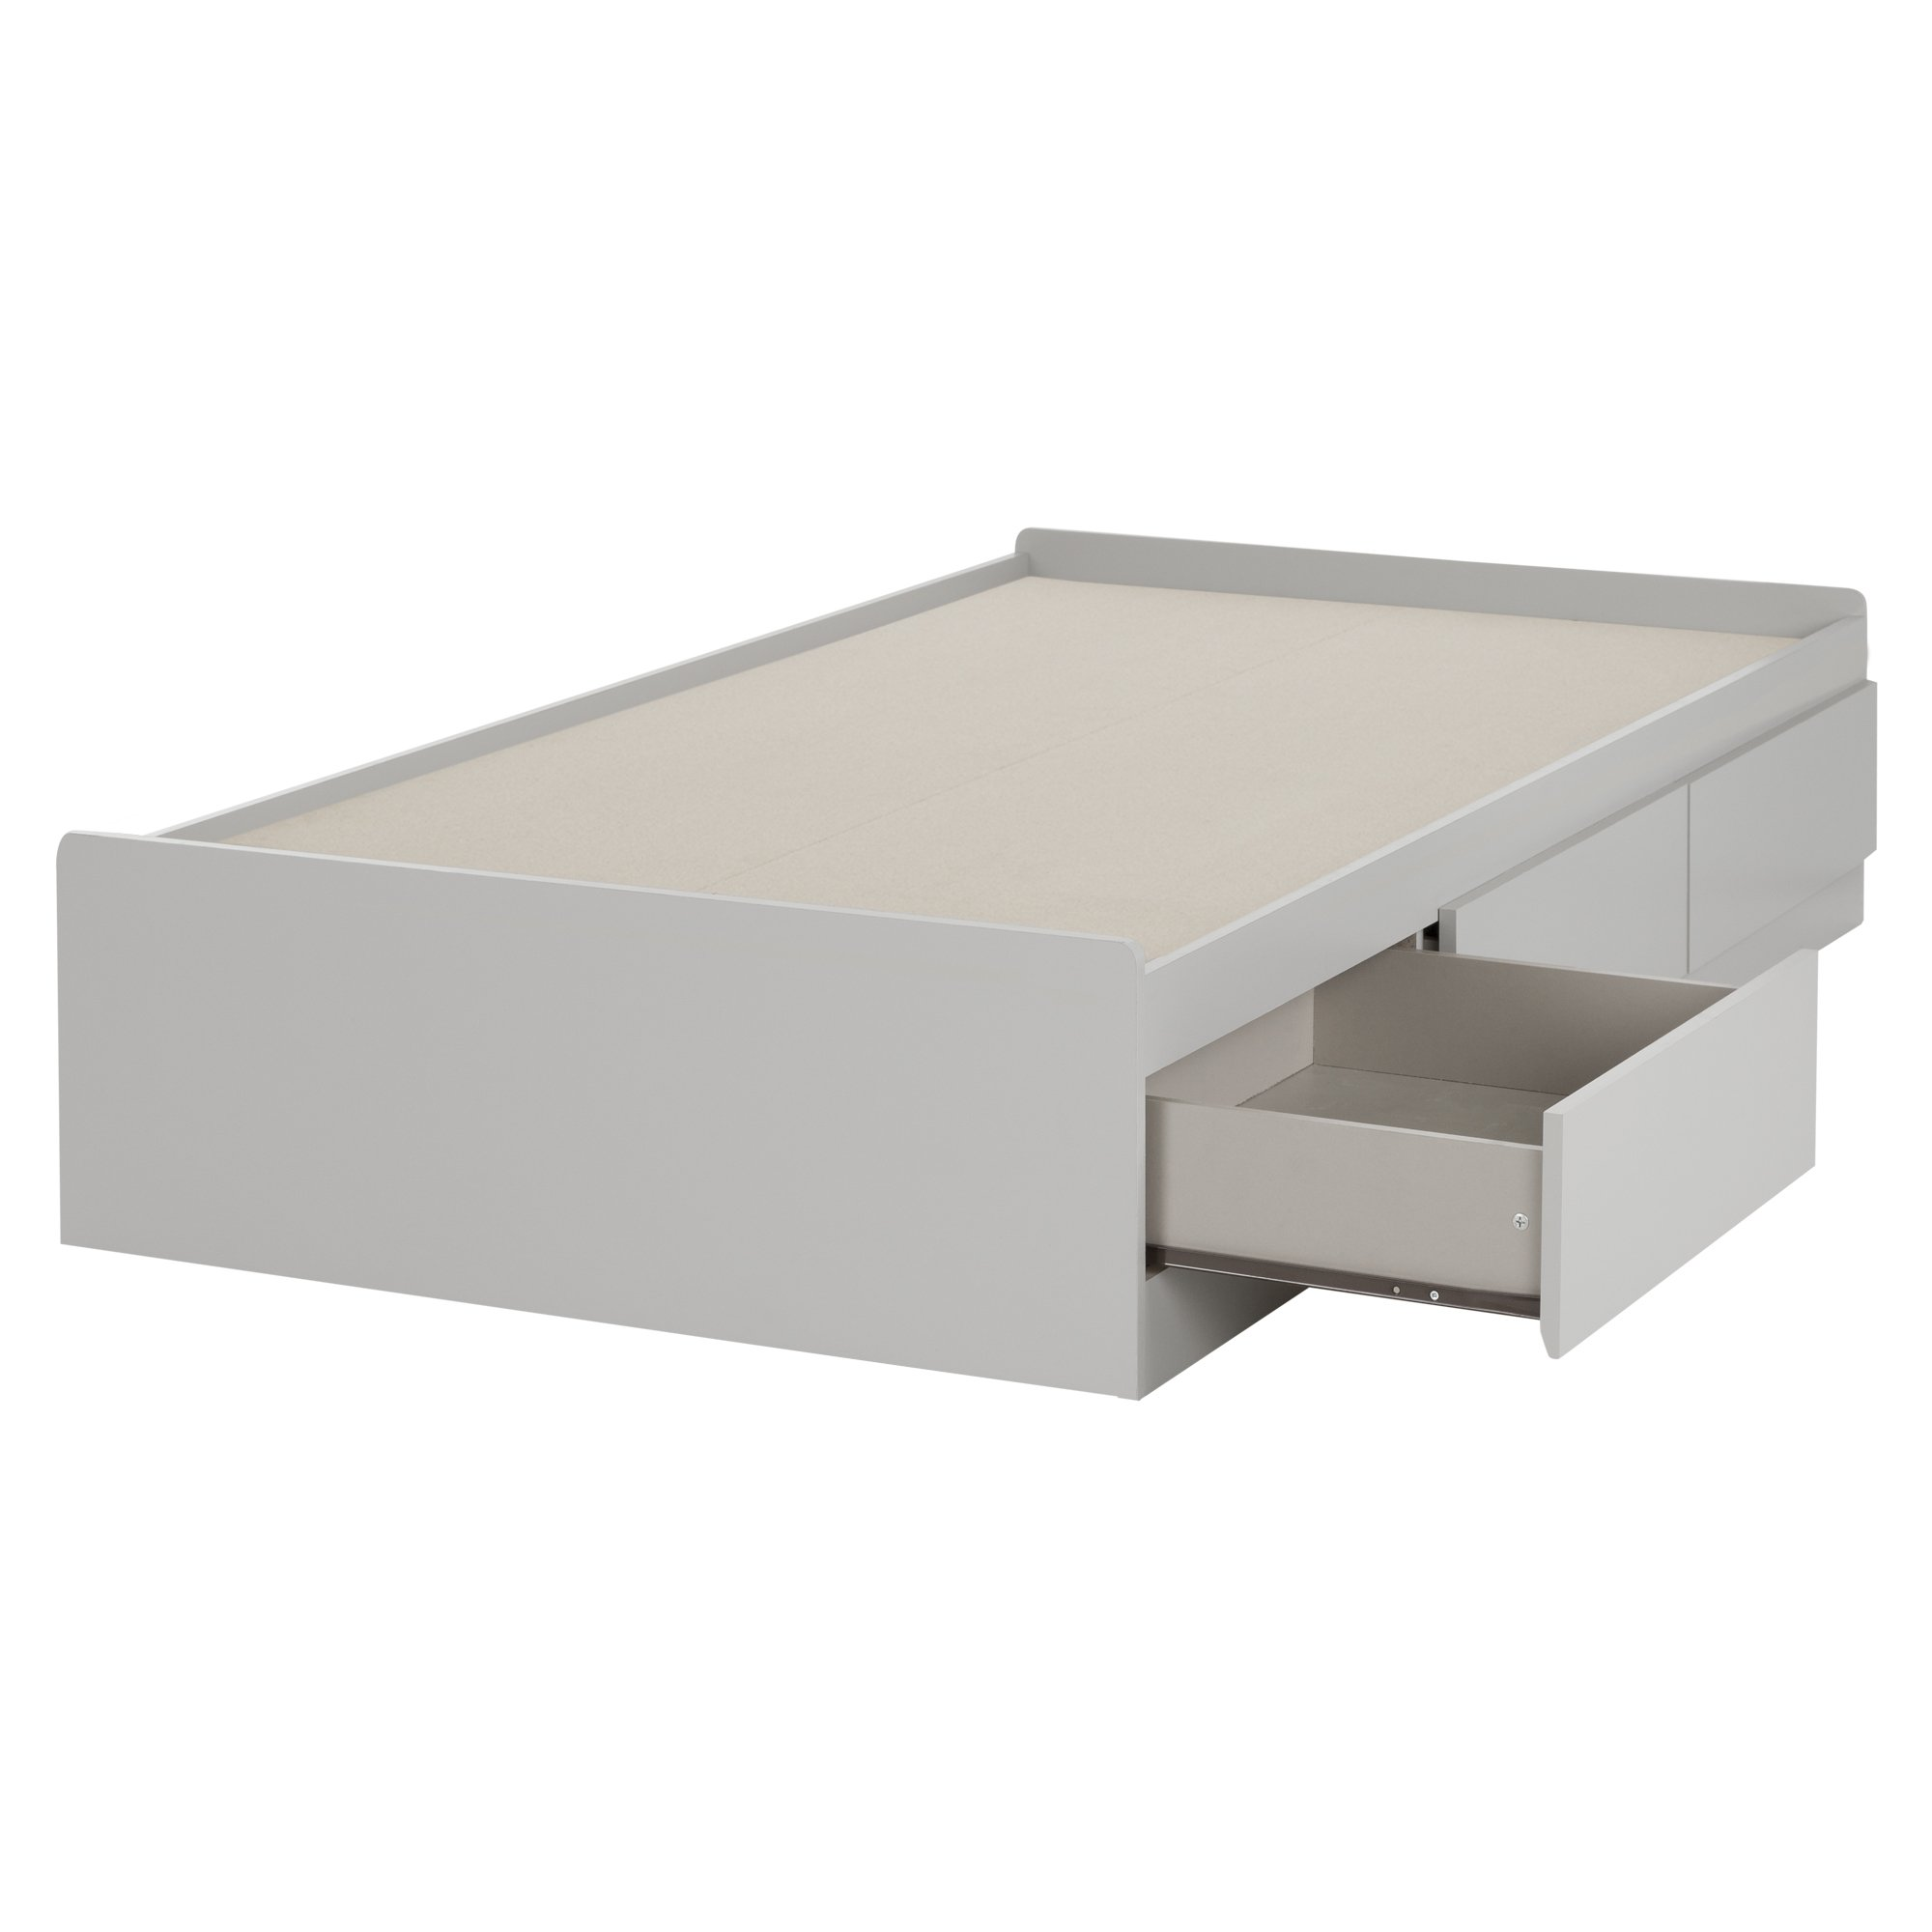 South Shore 10578 39'' Cookie Mates Bed with 3 Drawers, Twin, Soft Gray